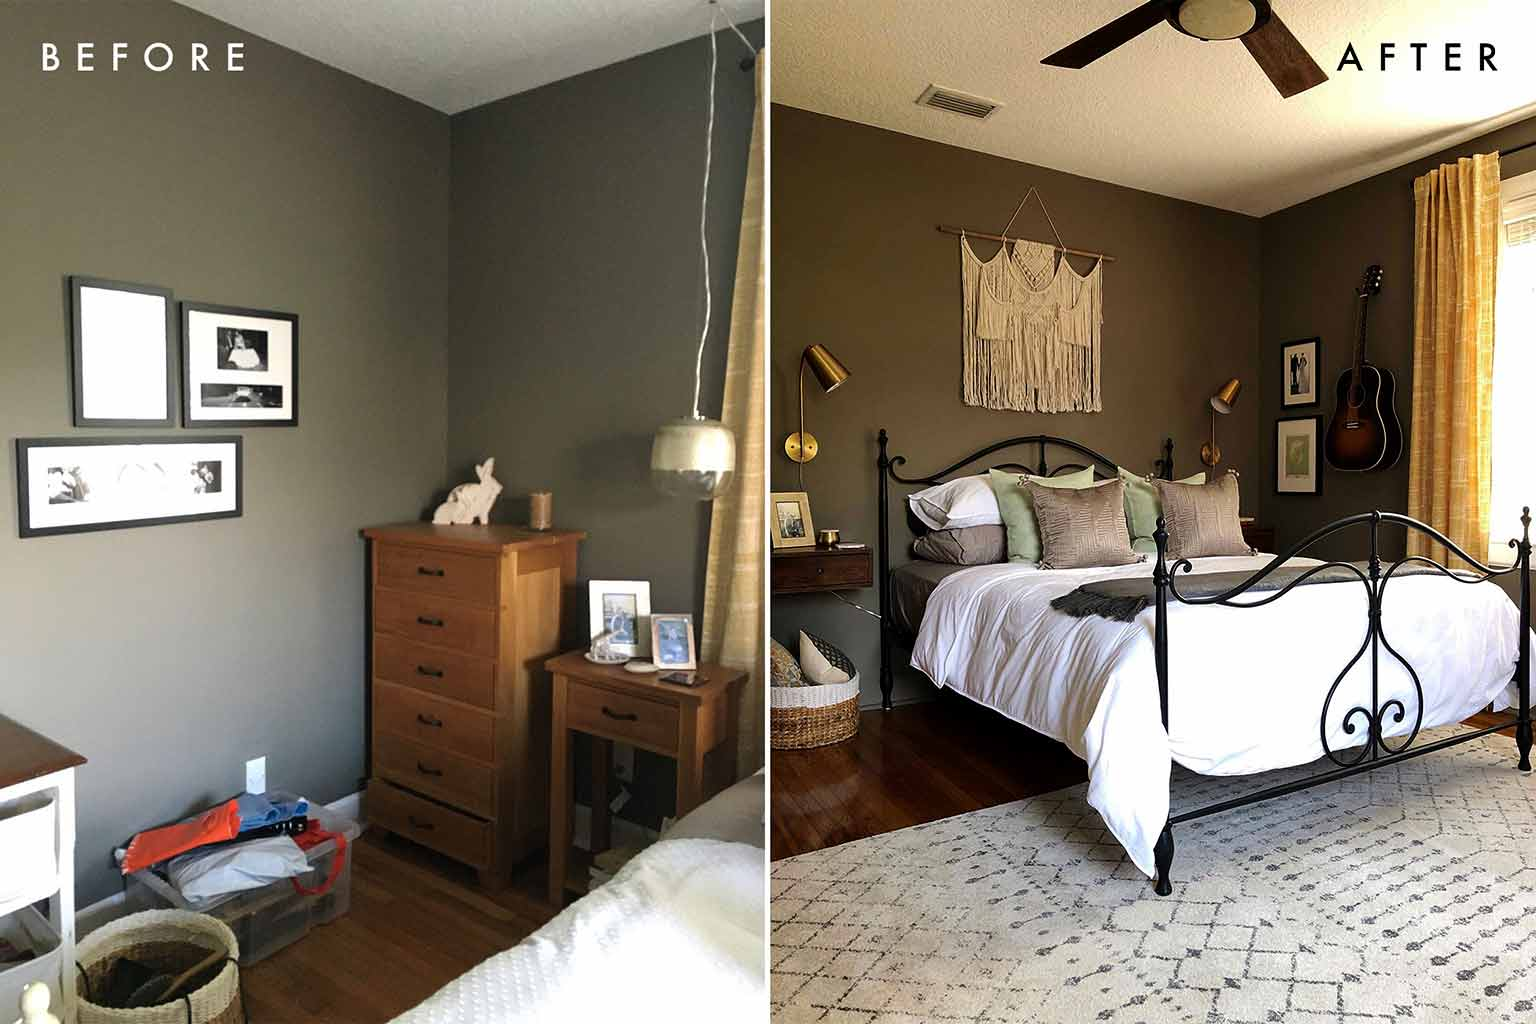 Master Bedroom Before and After - The One Room Challenge - That Homebird Life Blog